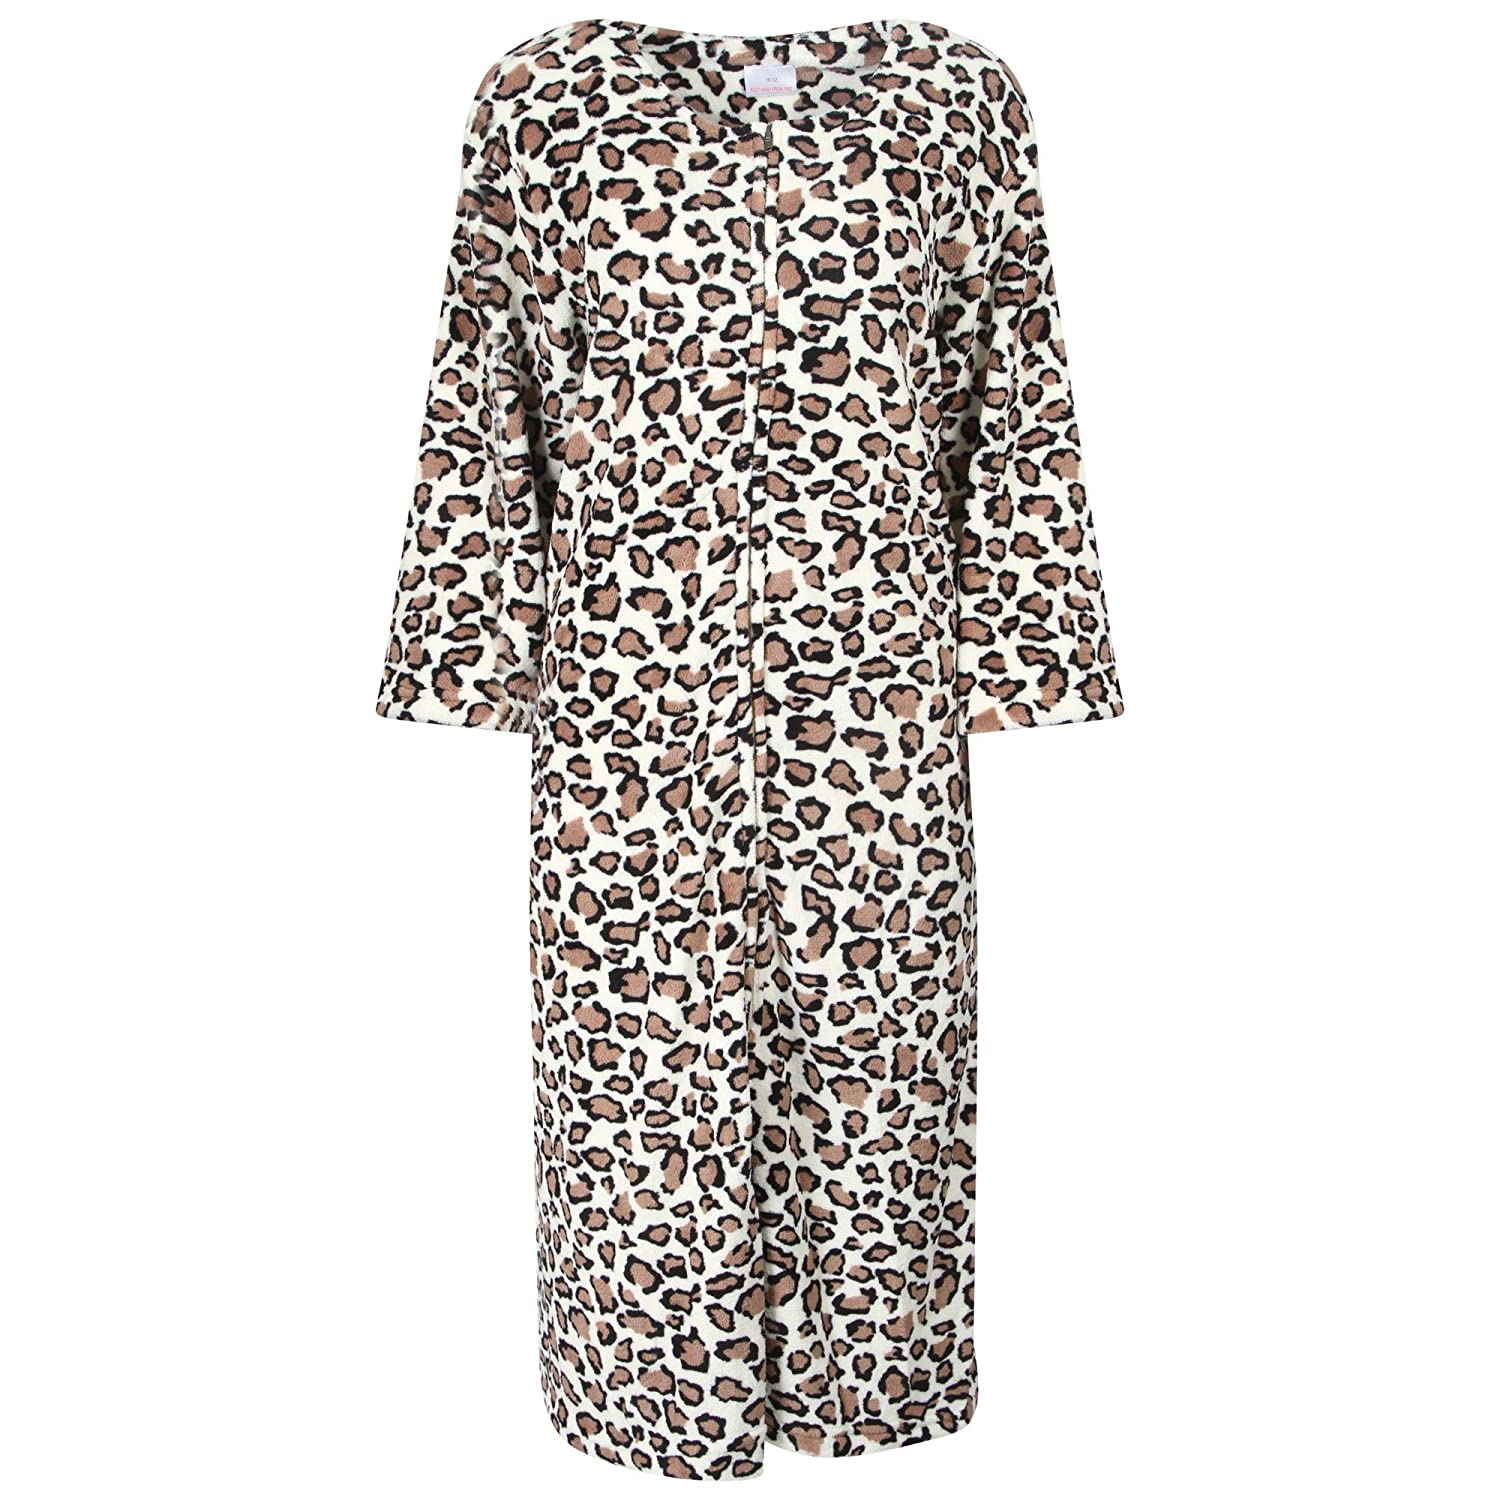 Ladies Zip Front Animal Print Fleece Dressing Gown. Ivory/Brown. Sizes 10-12 14-16 18-20 22-24